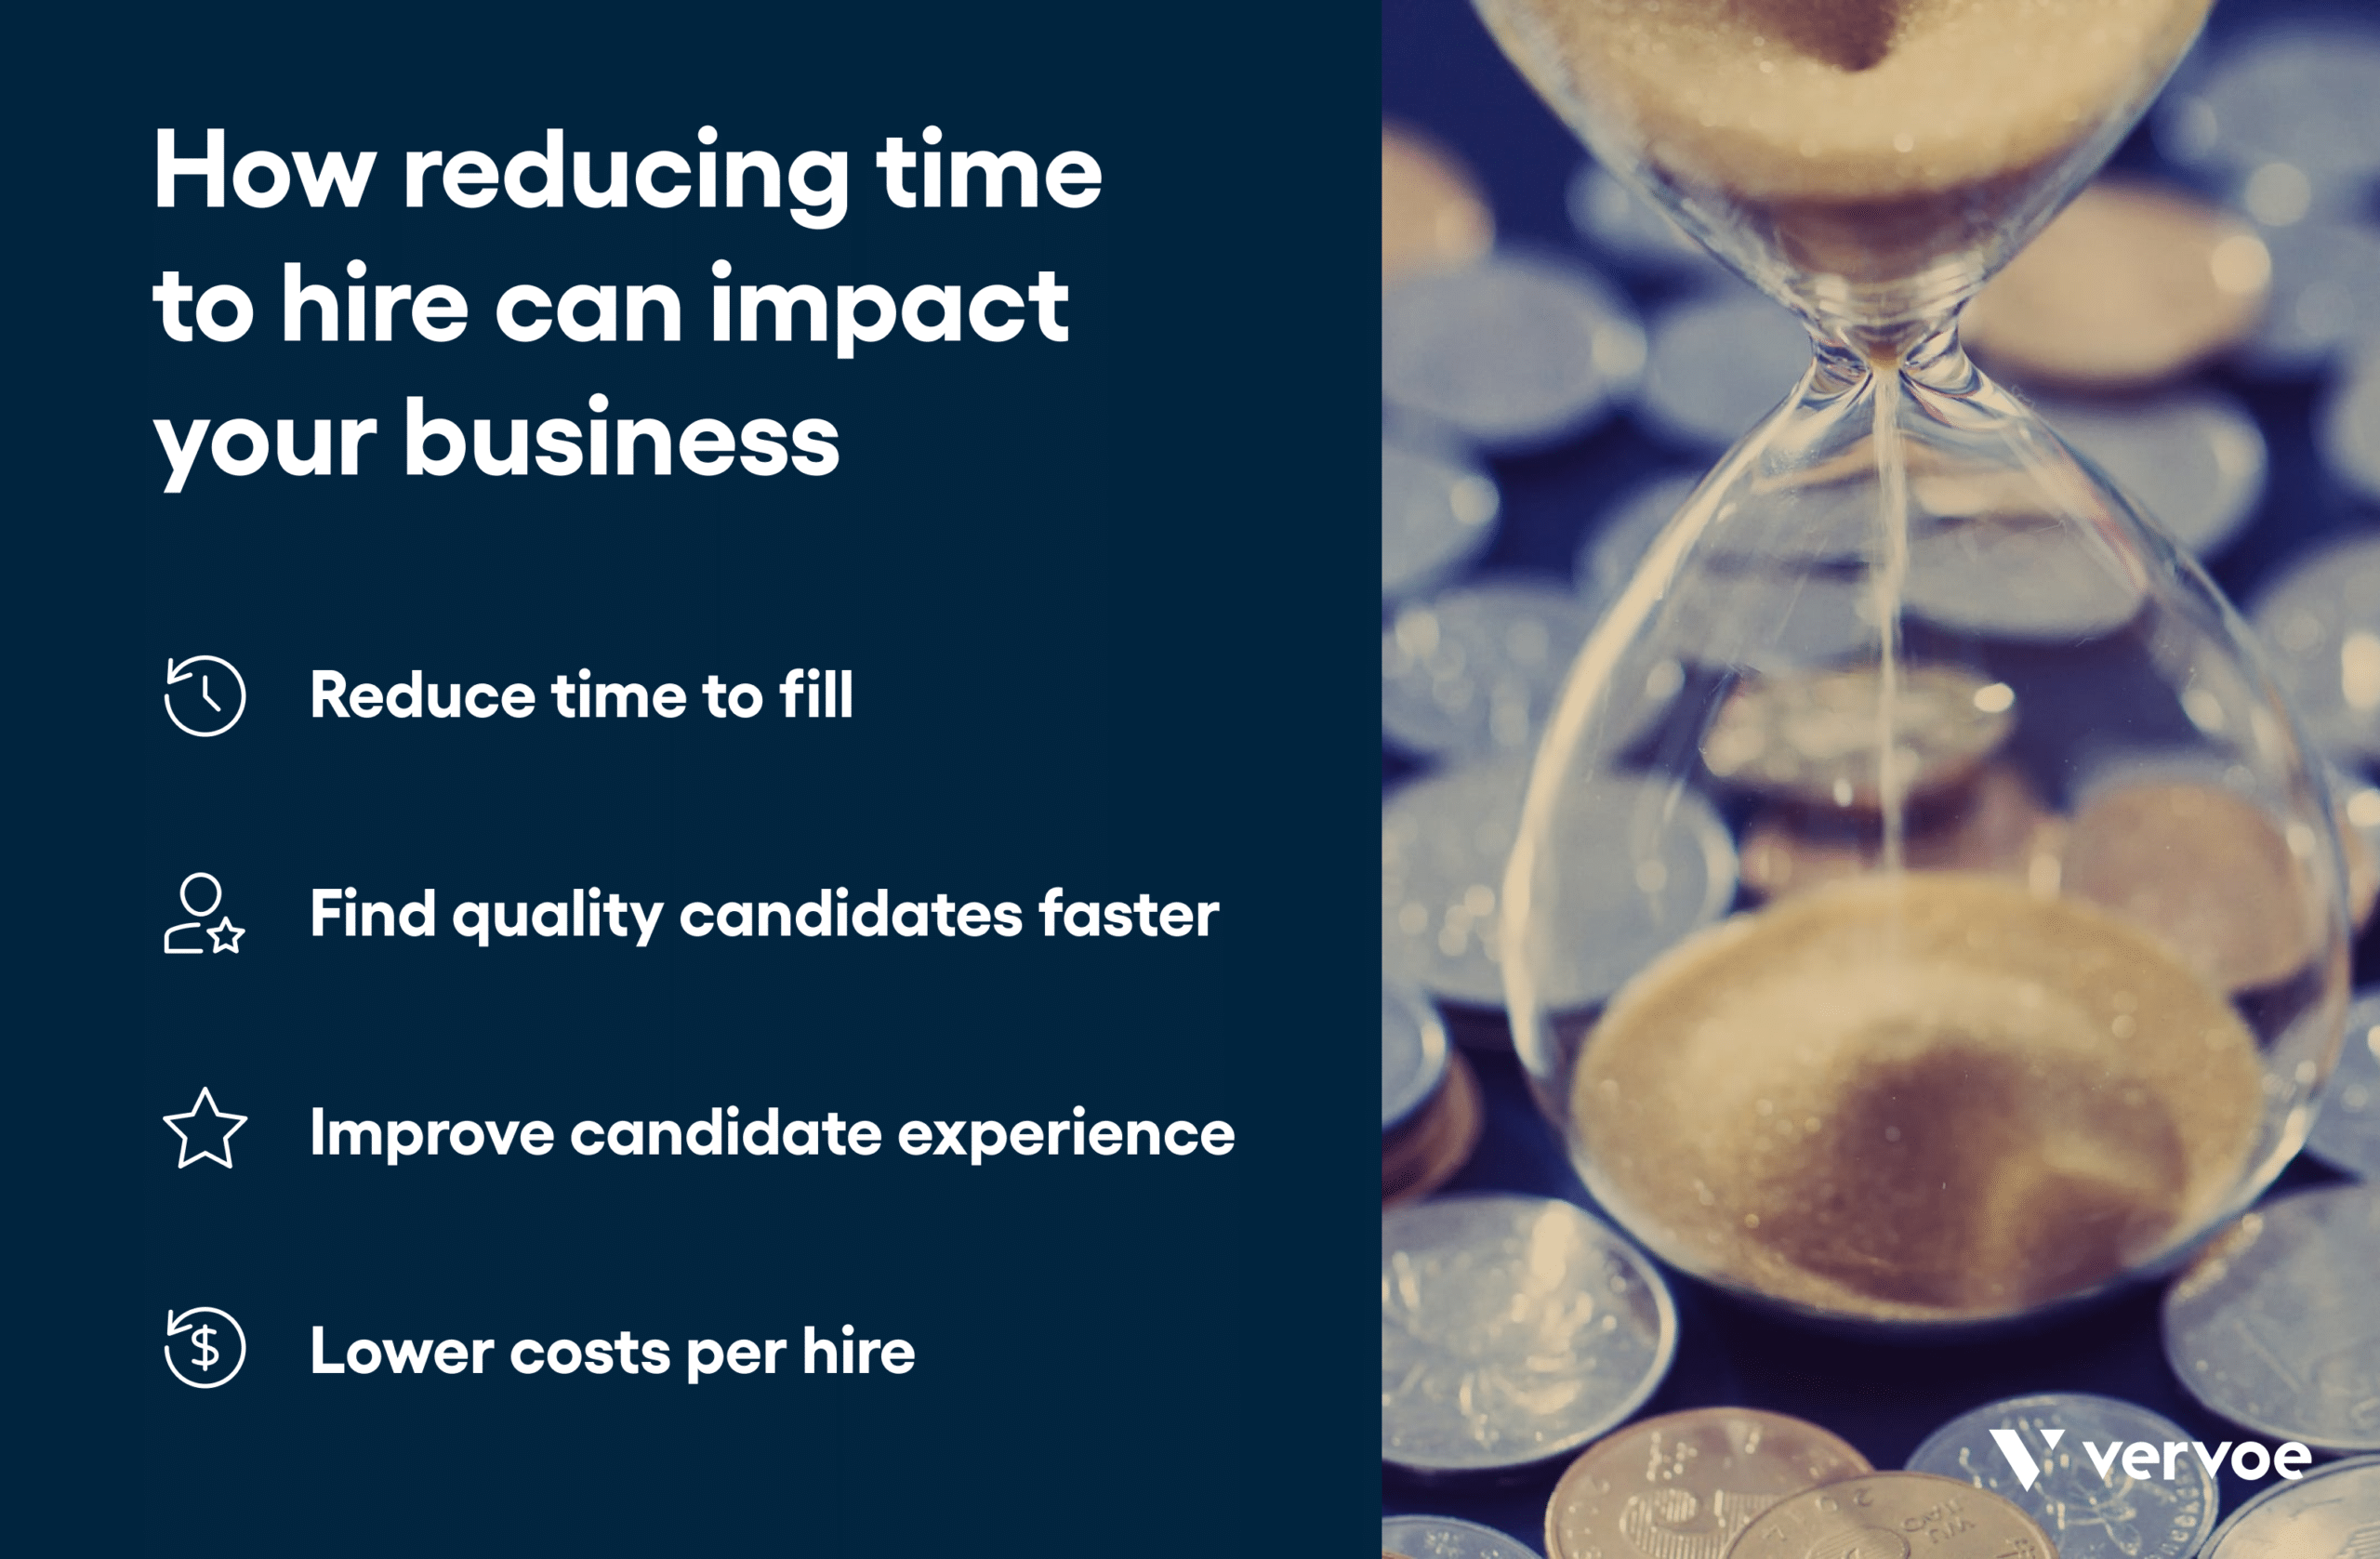 Infographic showing how reducing time to hire can impact your business